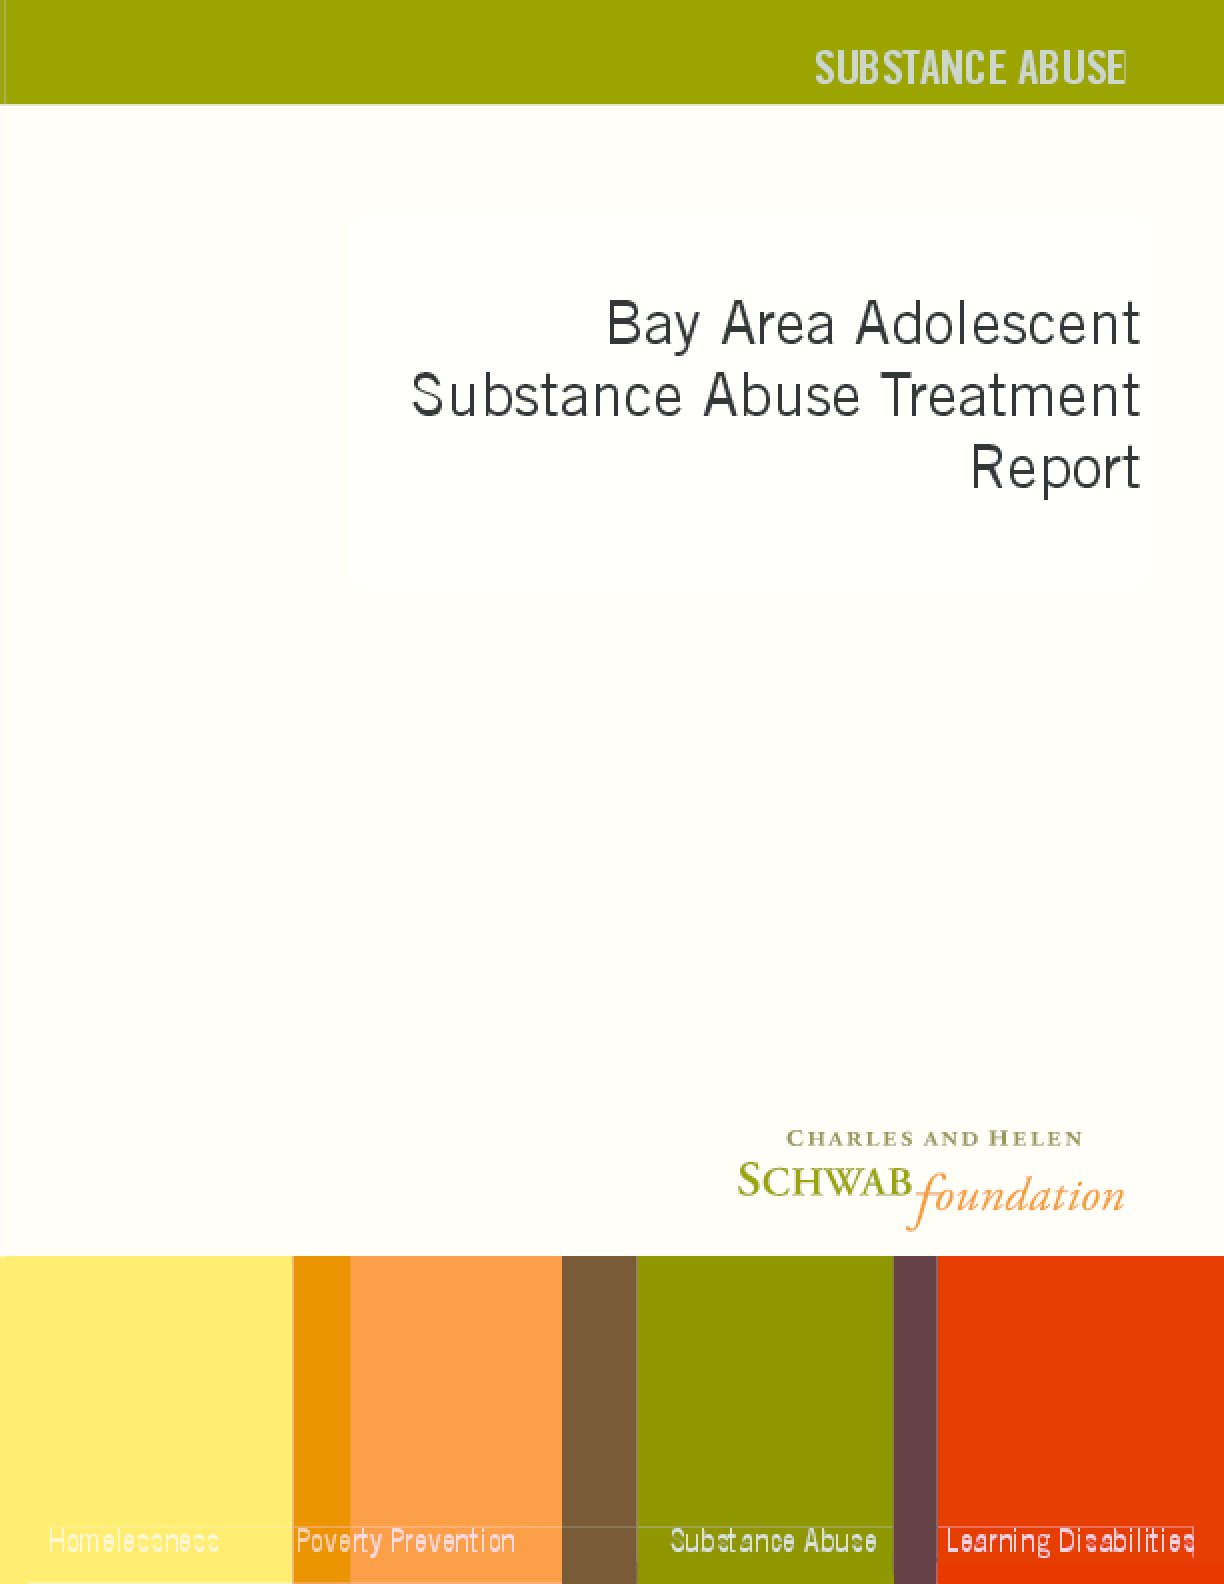 Bay Area Adolescent Substance Abuse Treatment Report